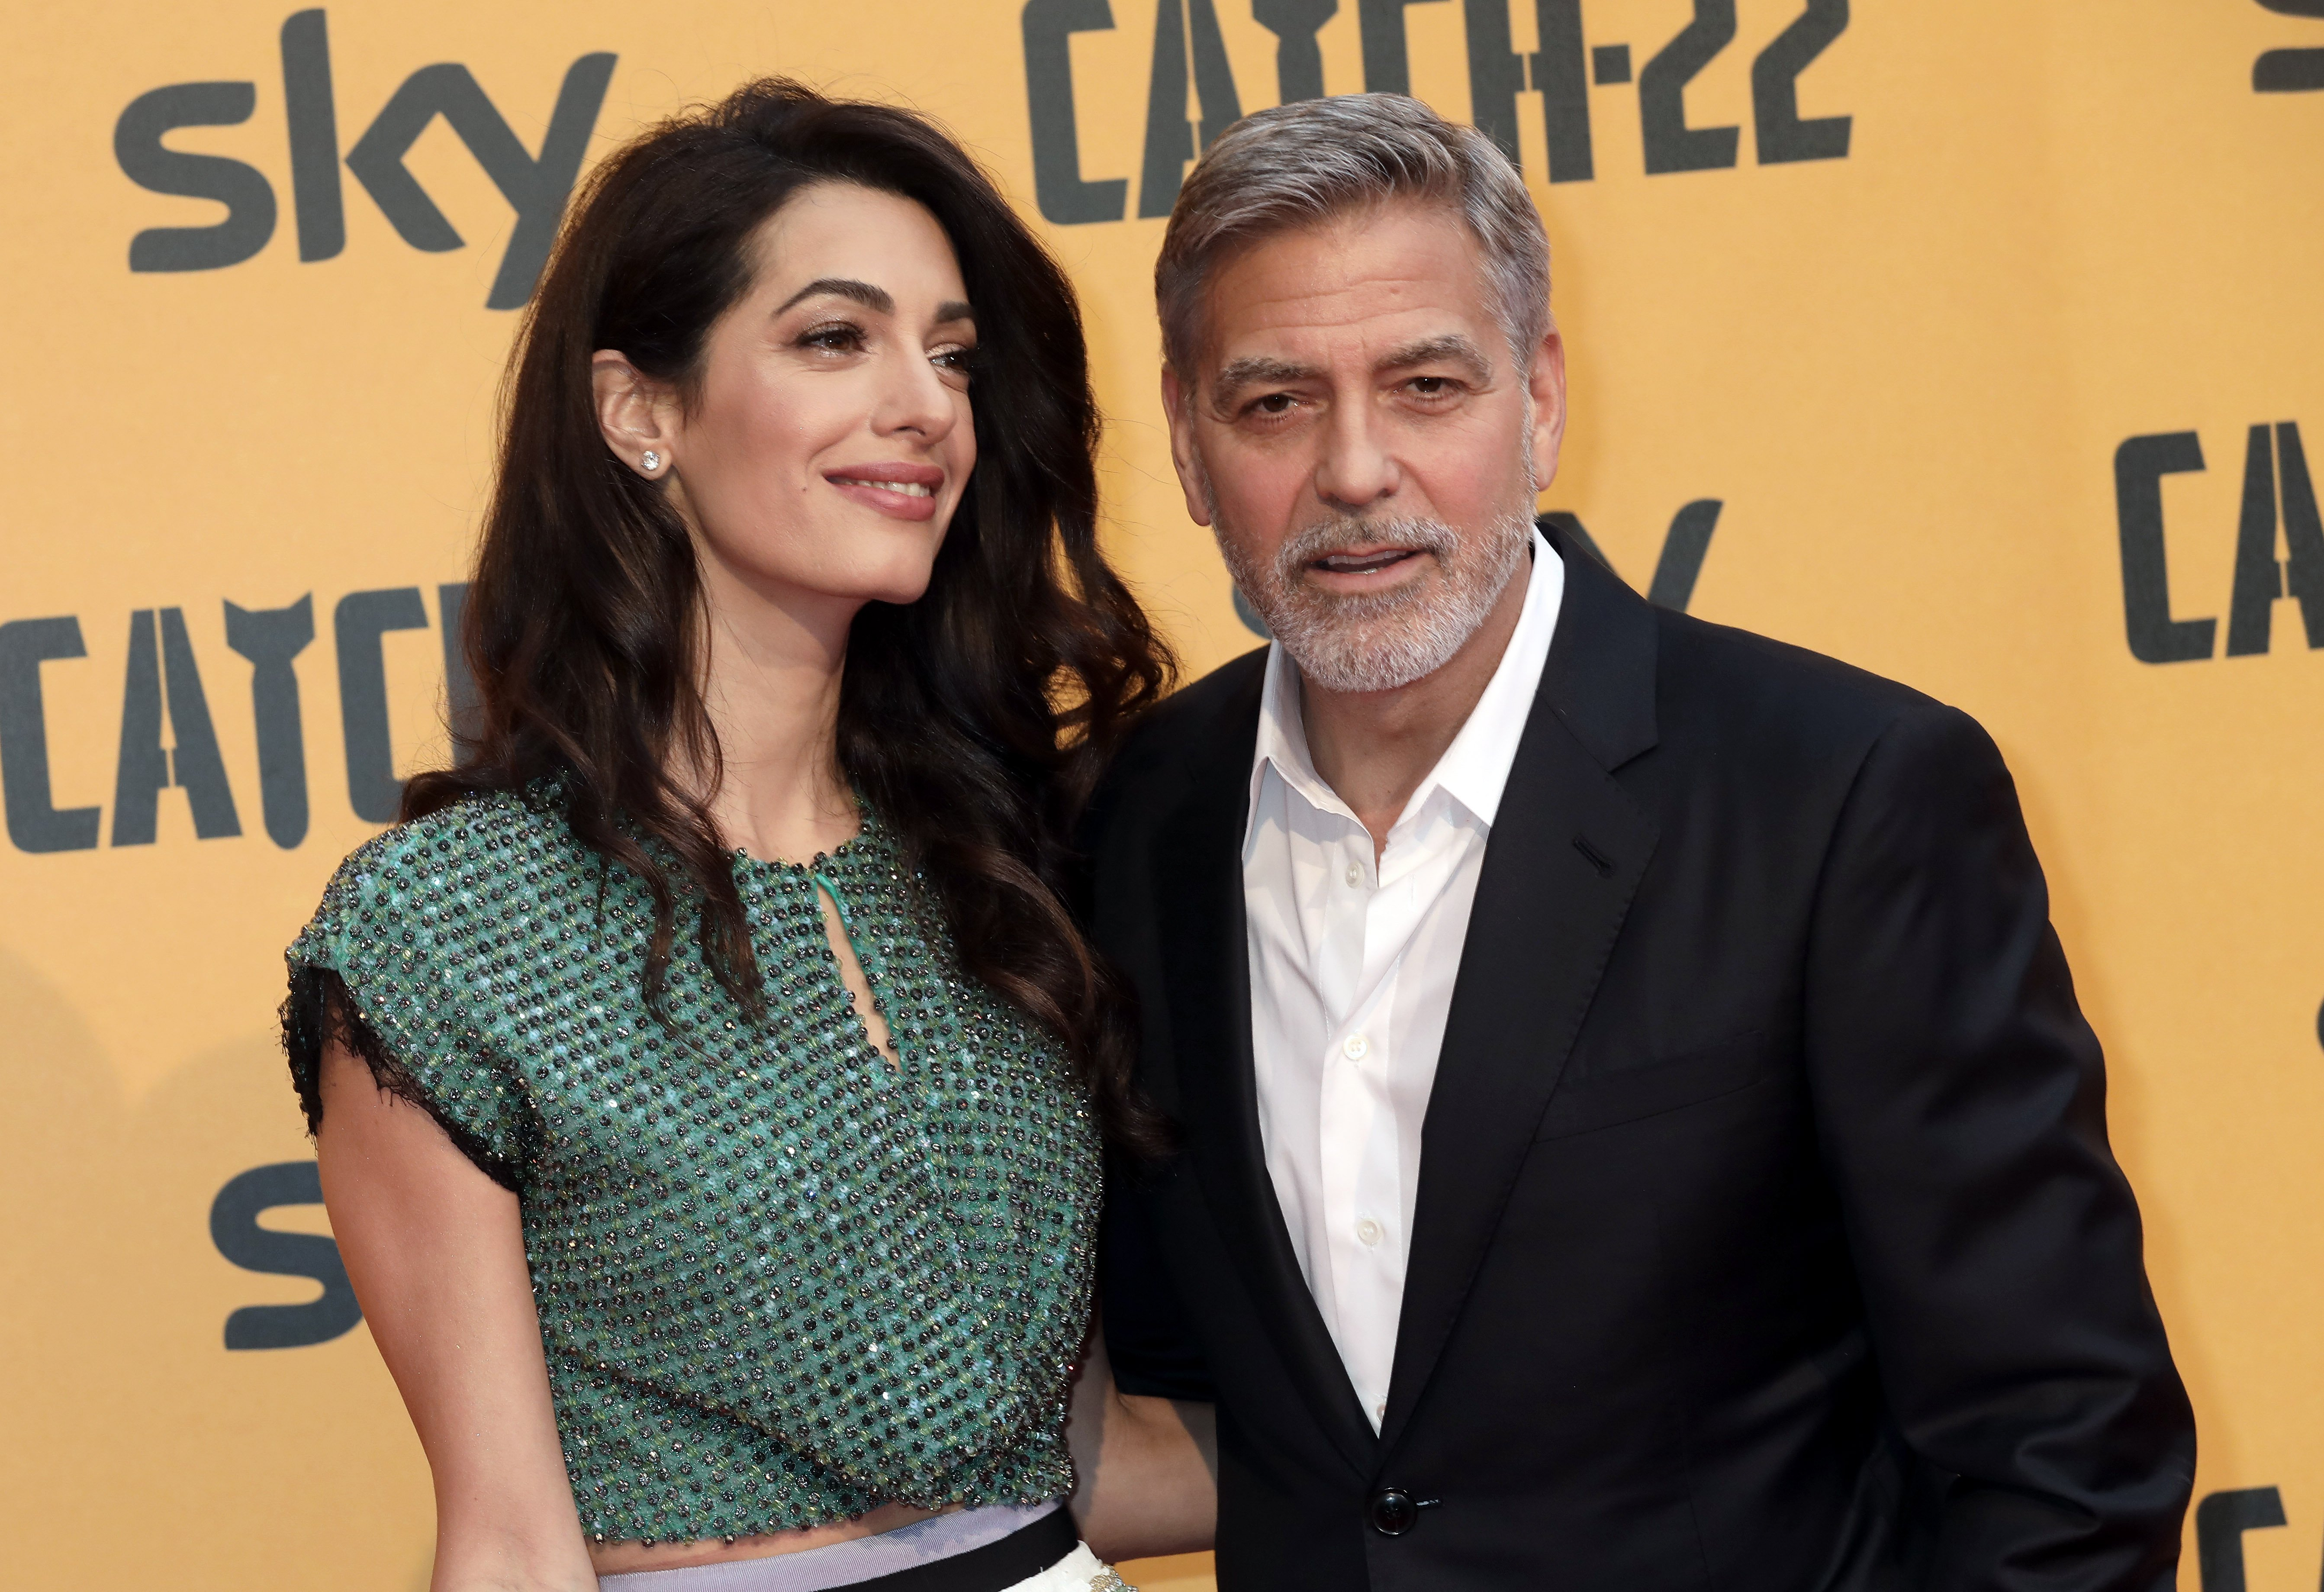 Amal and George Clooney attend 'Catch-22' Photocall on May 13, 2019, in Rome, Italy. | Source: Getty Images.